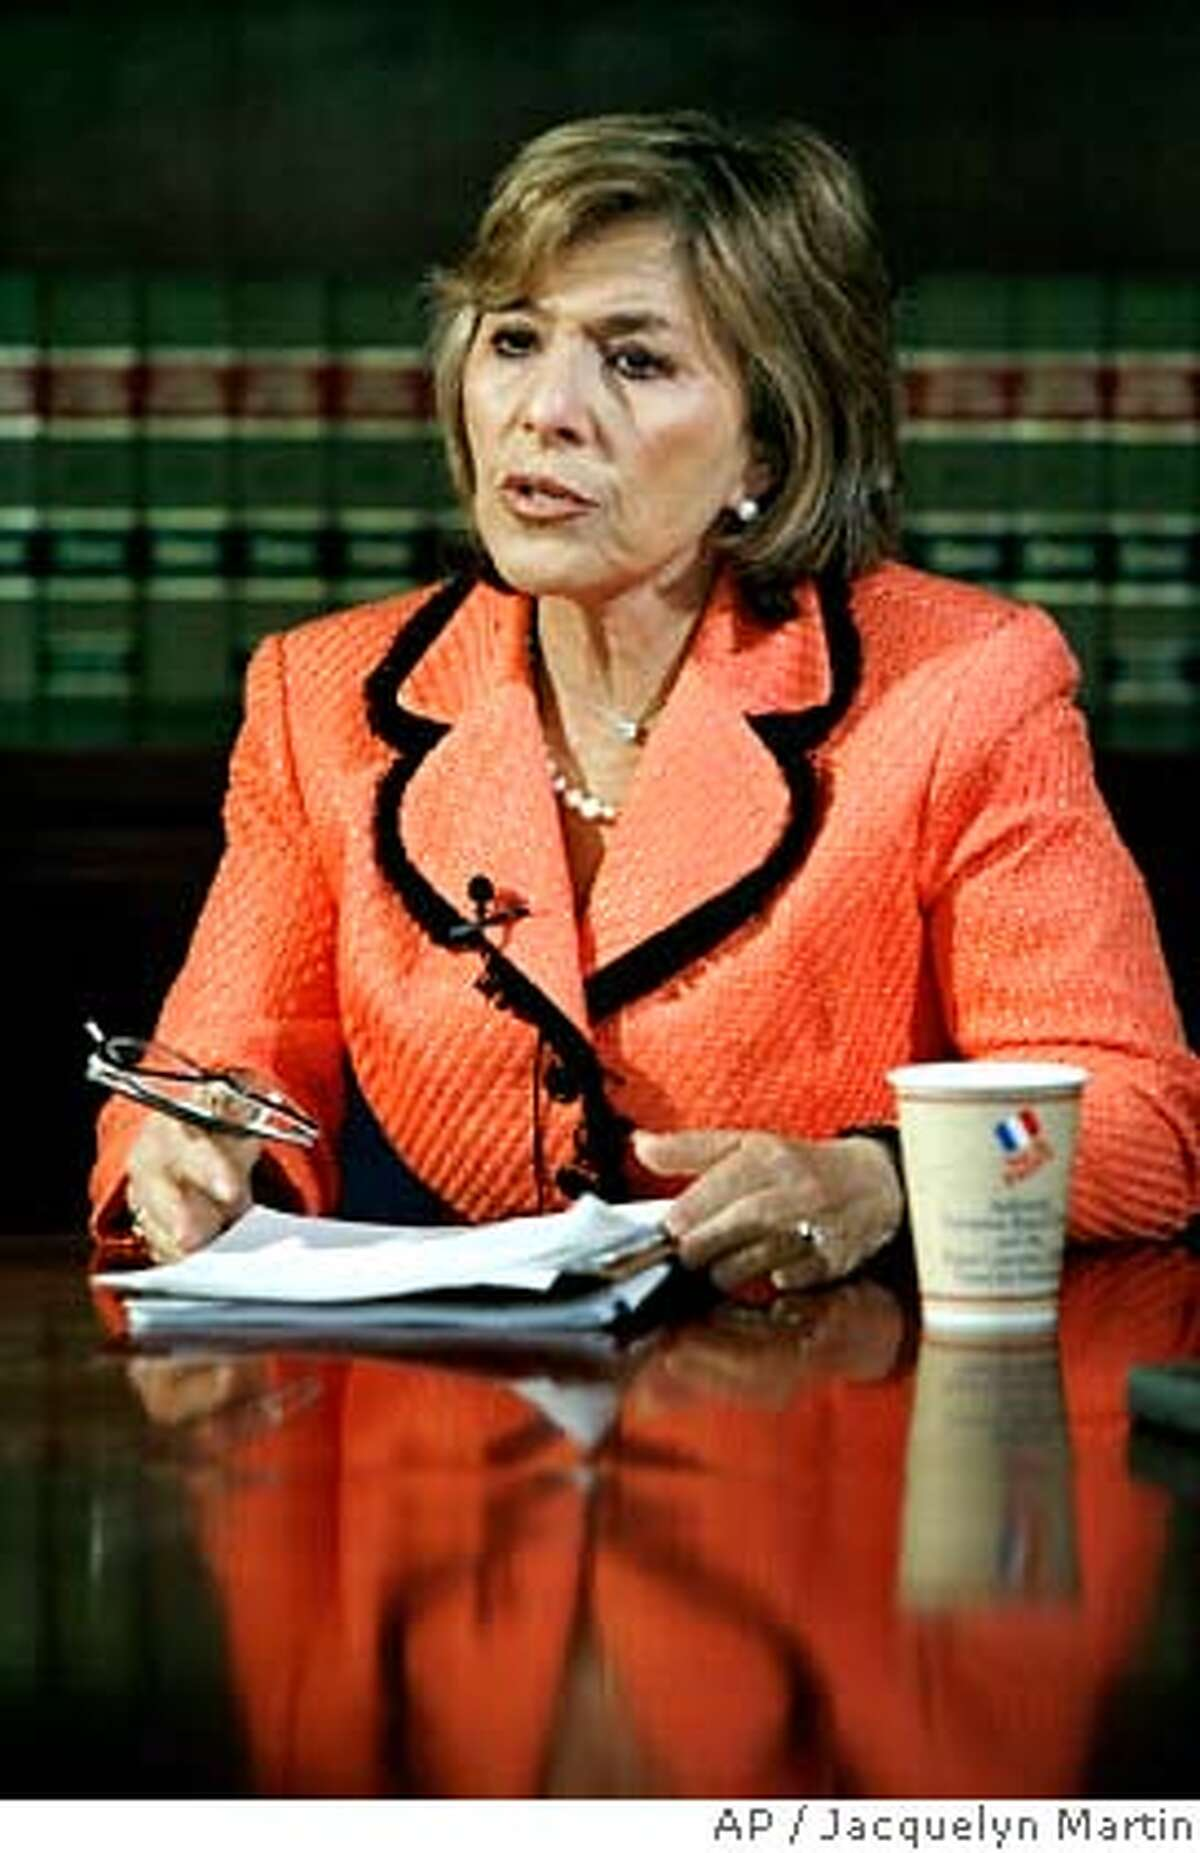 Sen. Barbara Boxer, D-Calif., the incoming chairman of the Senate Environment Committee, takes part in an interview with The Associated Press in Washington, Tuesday, Dec. 5, 2006. (AP Photo /Jacquelyn Martin) Ran on: 12-06-2006 Sen. Barbara Boxer wants governor, two lawmakers to come and tell America that this can be done. ALSO Ran on: 01-12-2007 Ran on: 01-12-2007